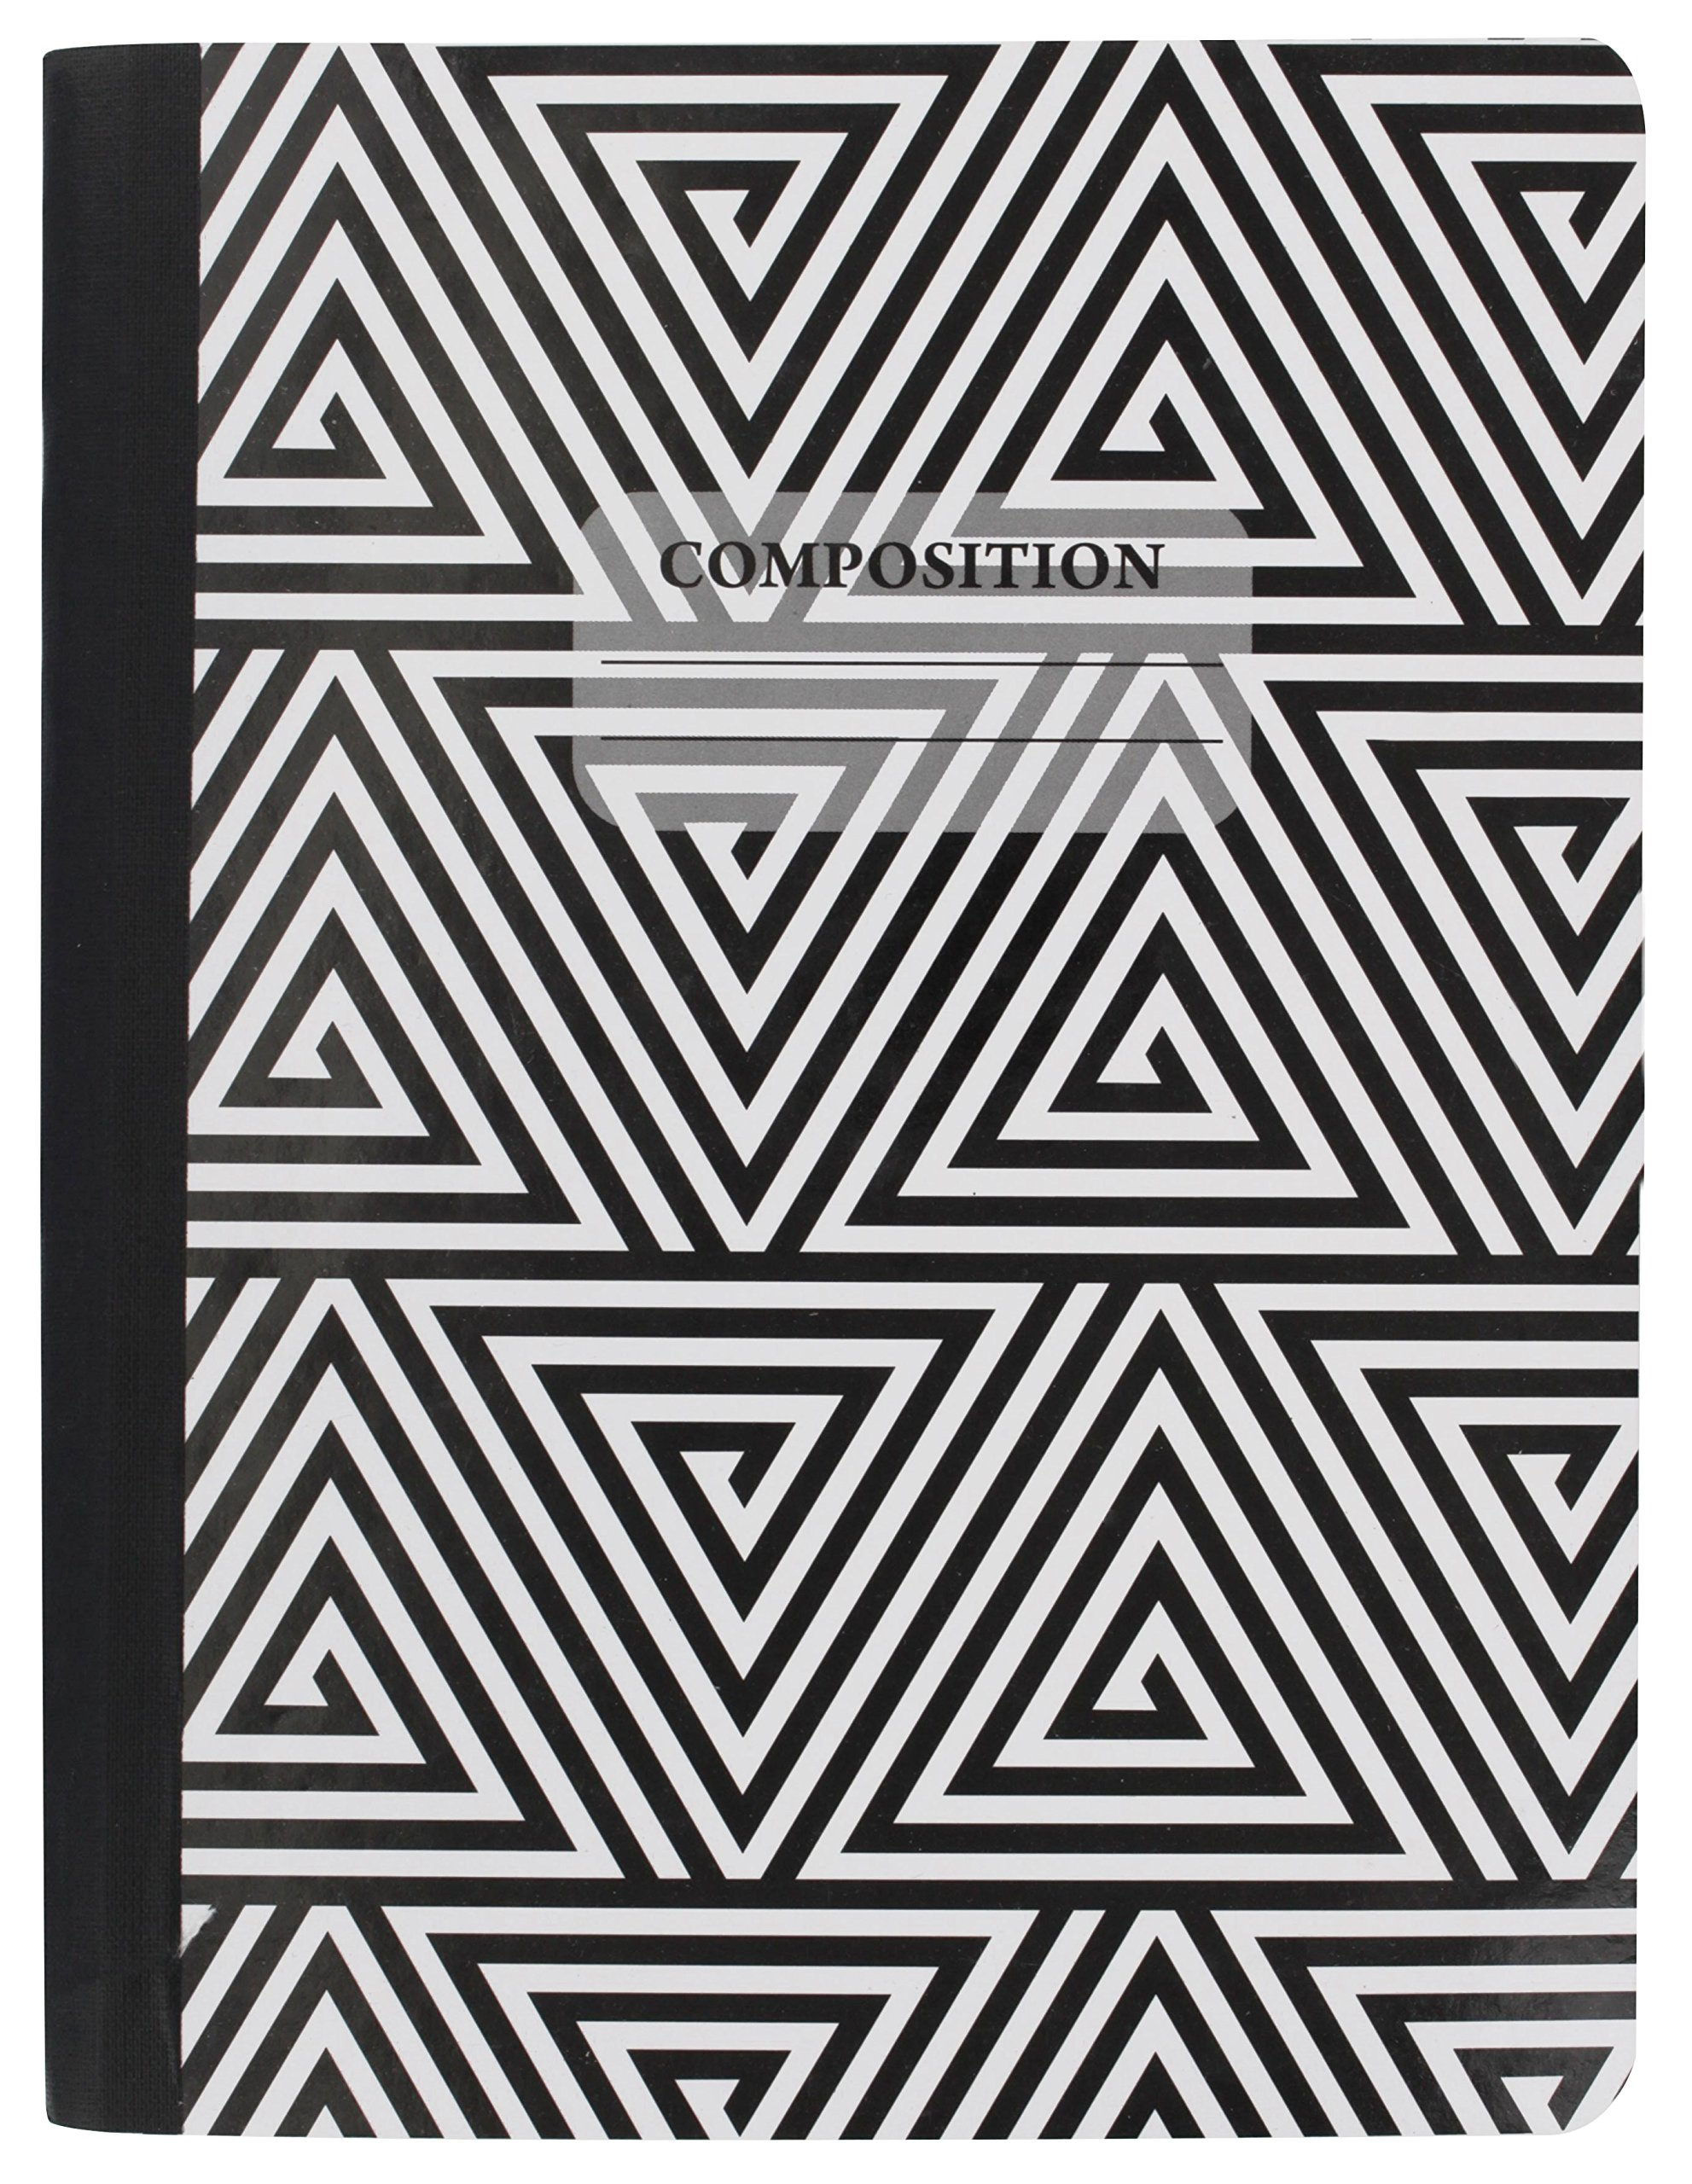 Emraw Black & White 4 Fashion Styles Cover Composition Book with 100 Sheets of Wide Ruled White Paper - Set Includes All Style Covers (4 Pack) by Emraw (Image #4)